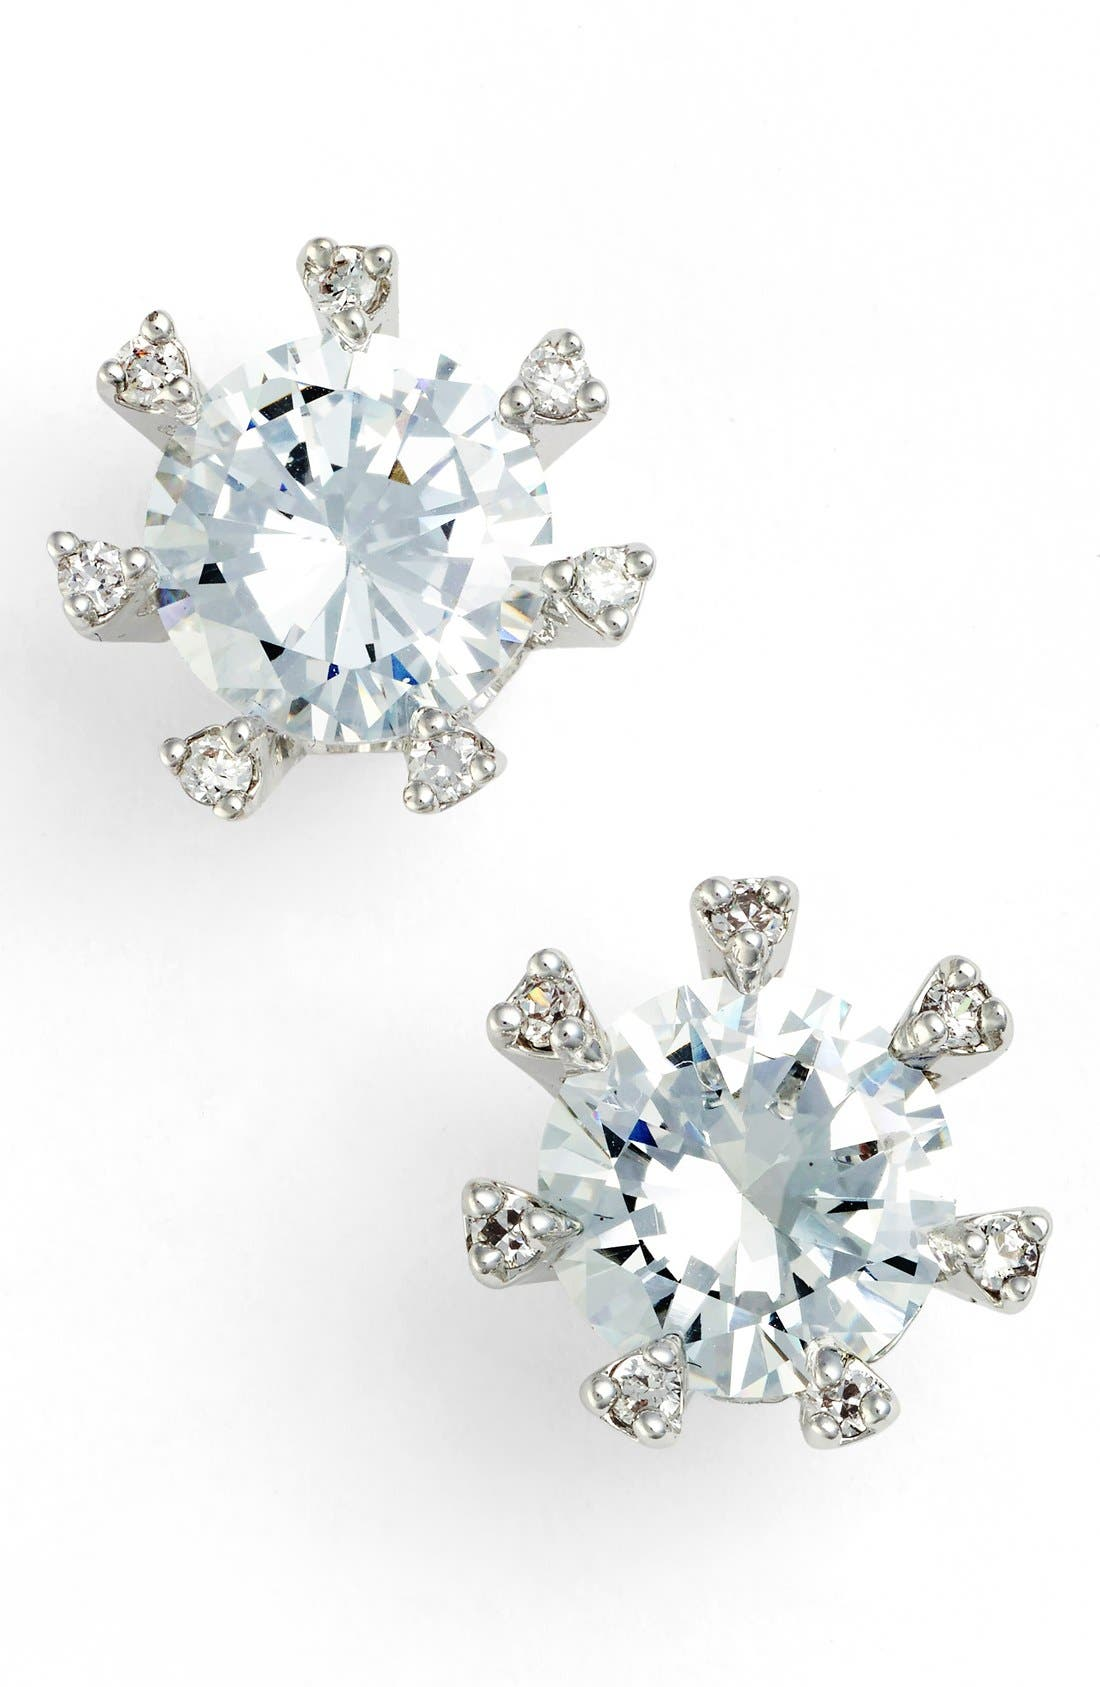 Embellished Prong Cubic Zirconia Stud Earrings,                         Main,                         color, Silver